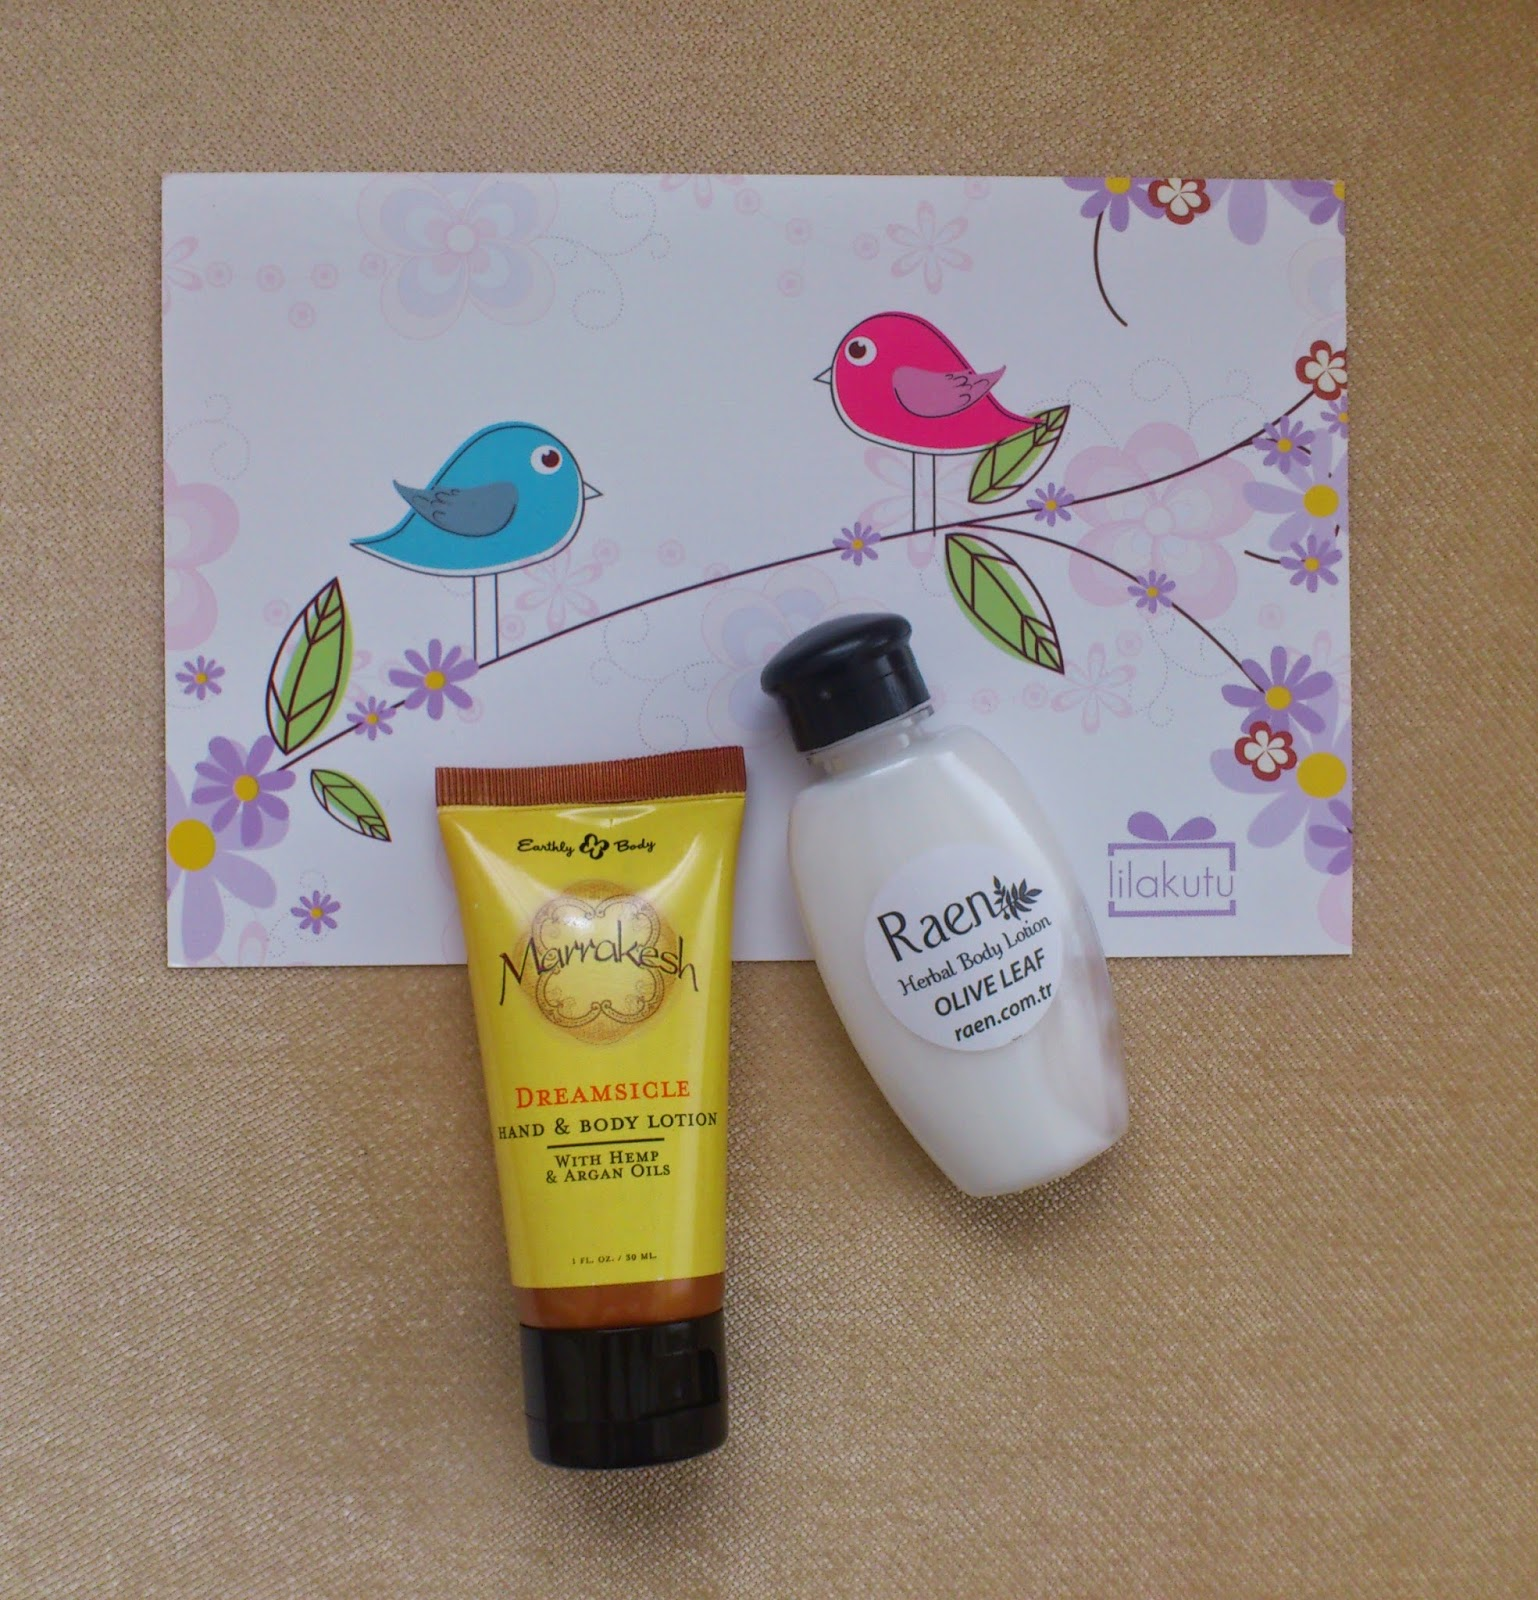 Marrakesh Hand Body Lotion